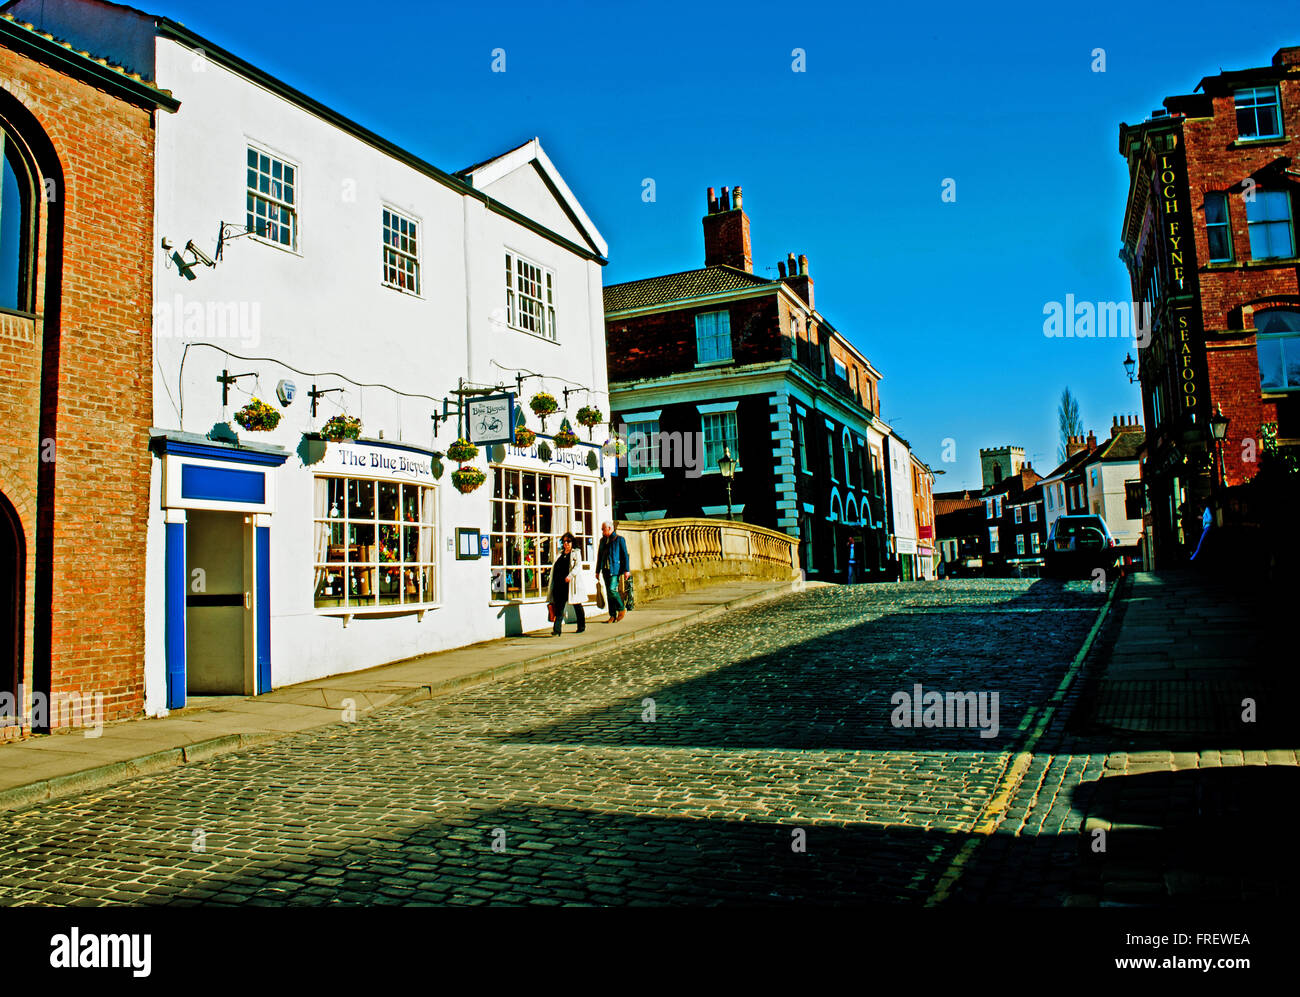 The Blue Bicycle, Fossgate York - Stock Image